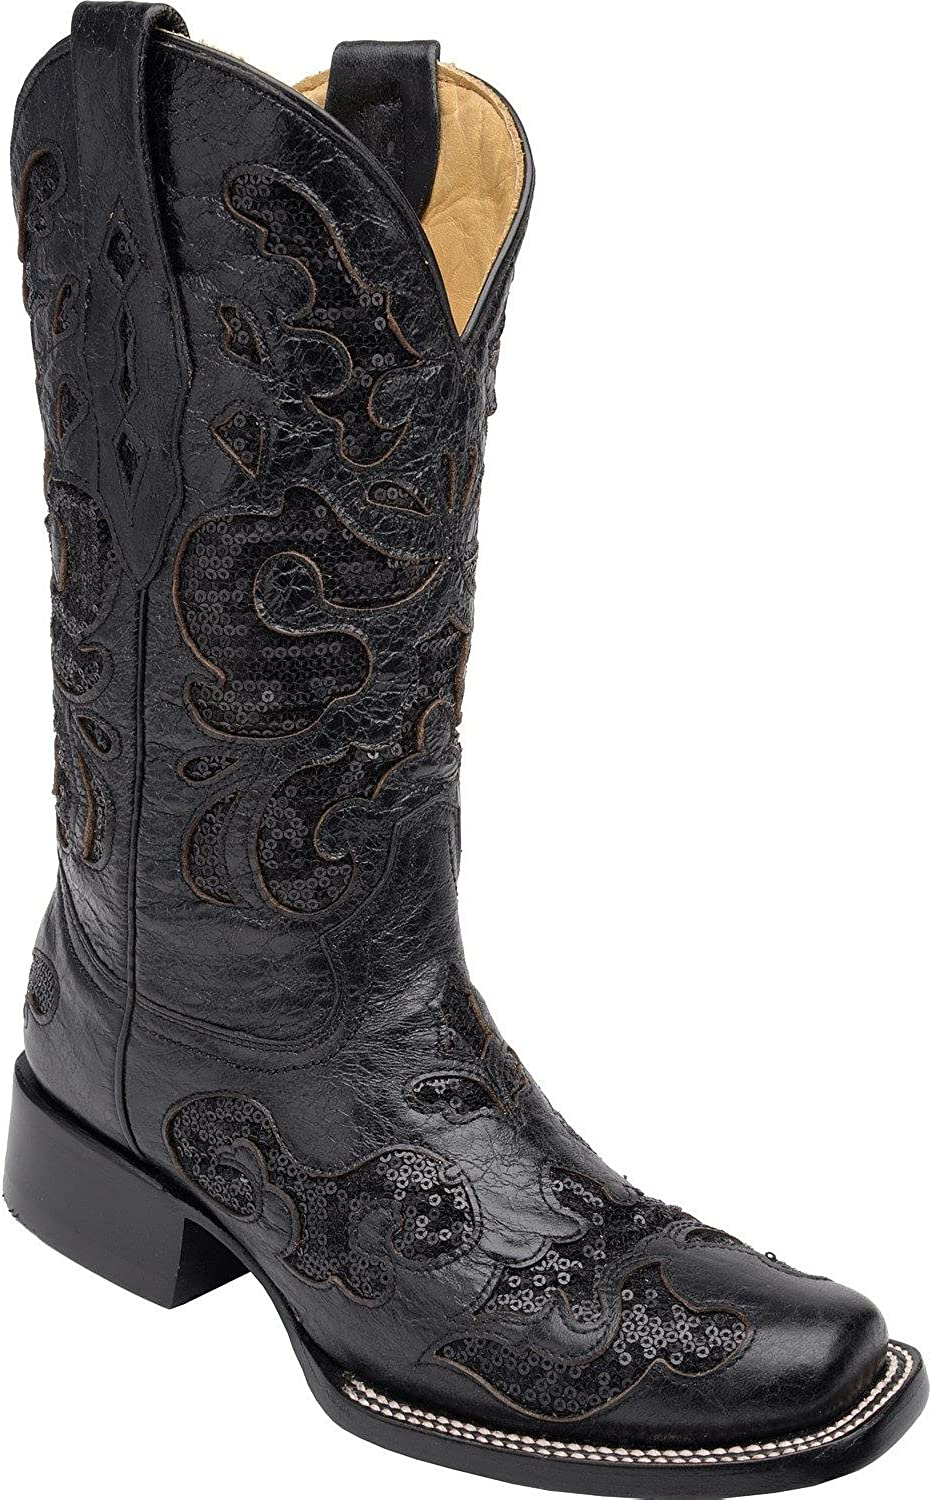 CORRAL Women's Sequin Inlay Cowgirl Boot Square Toe Black